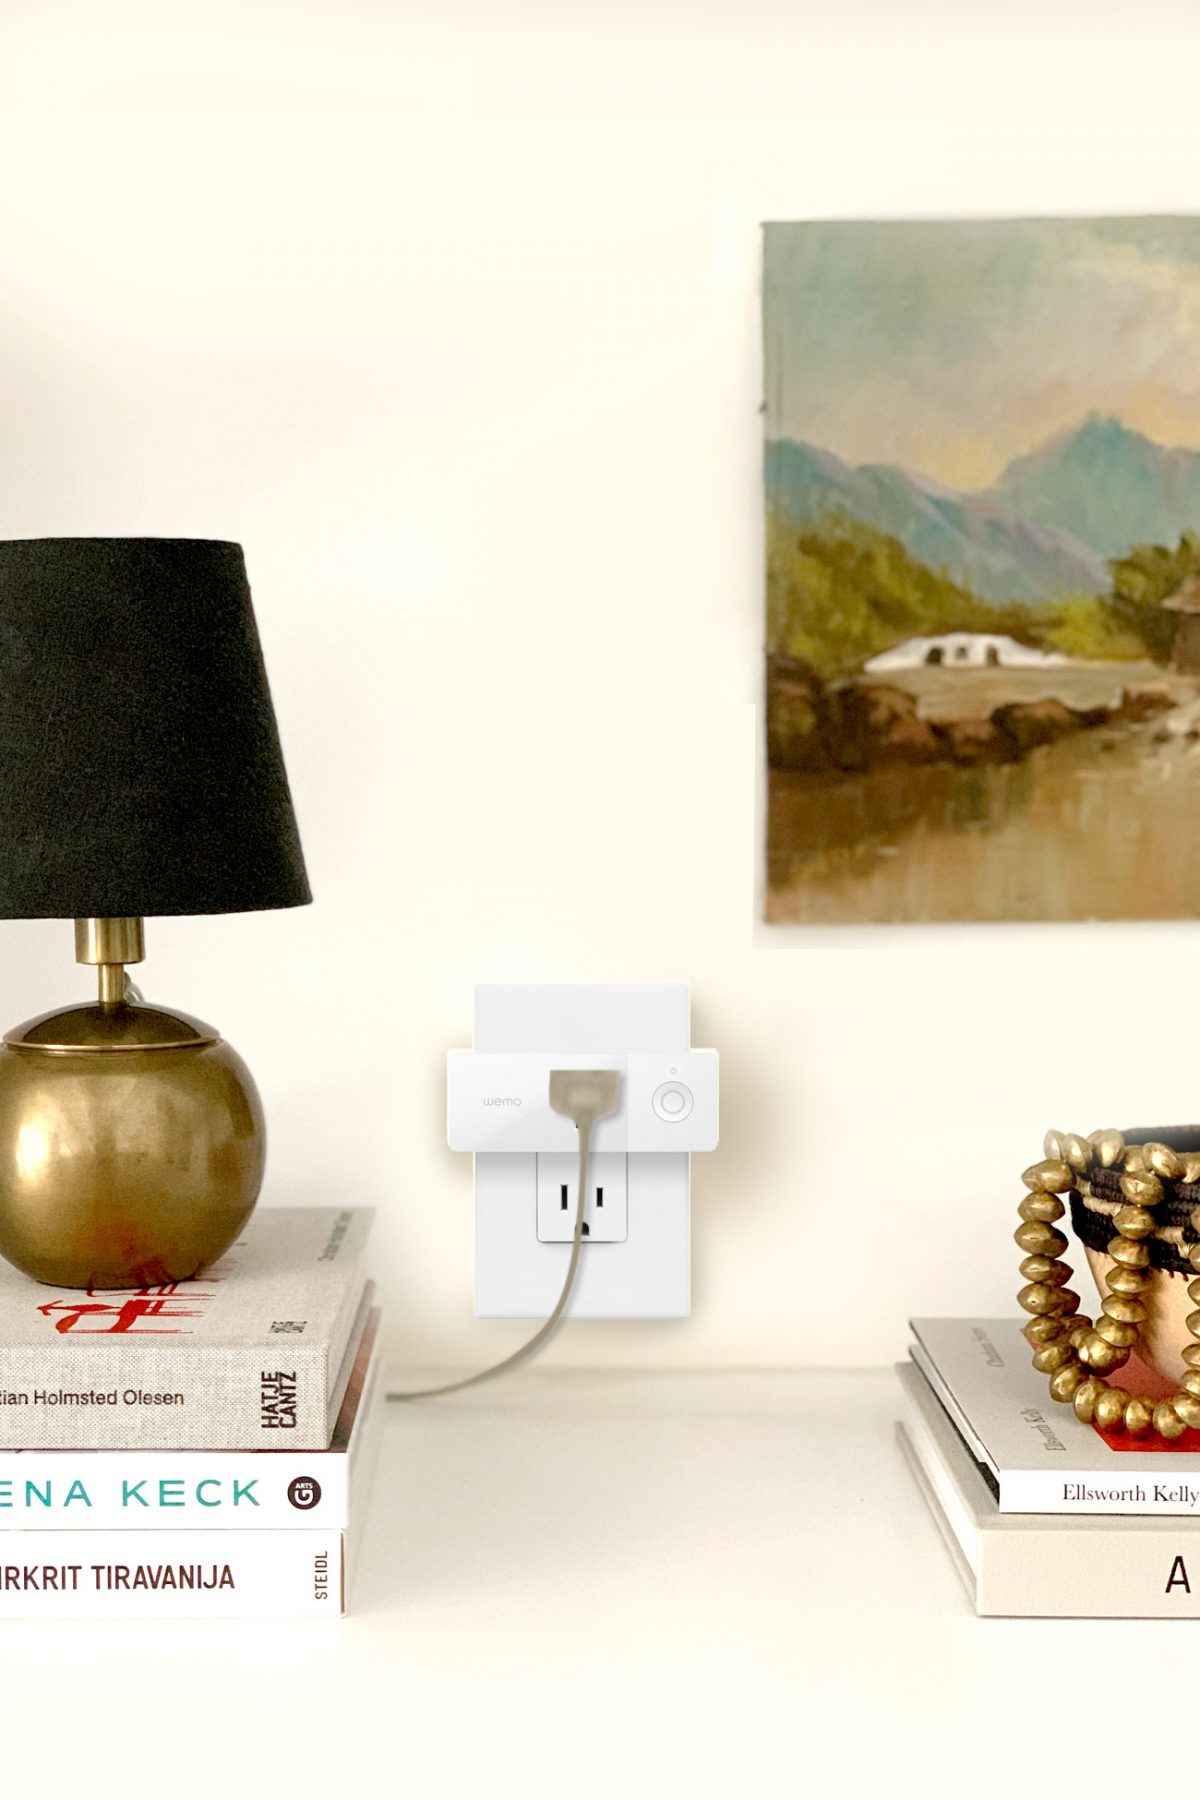 smart home basics: Smart plug, smart plugs